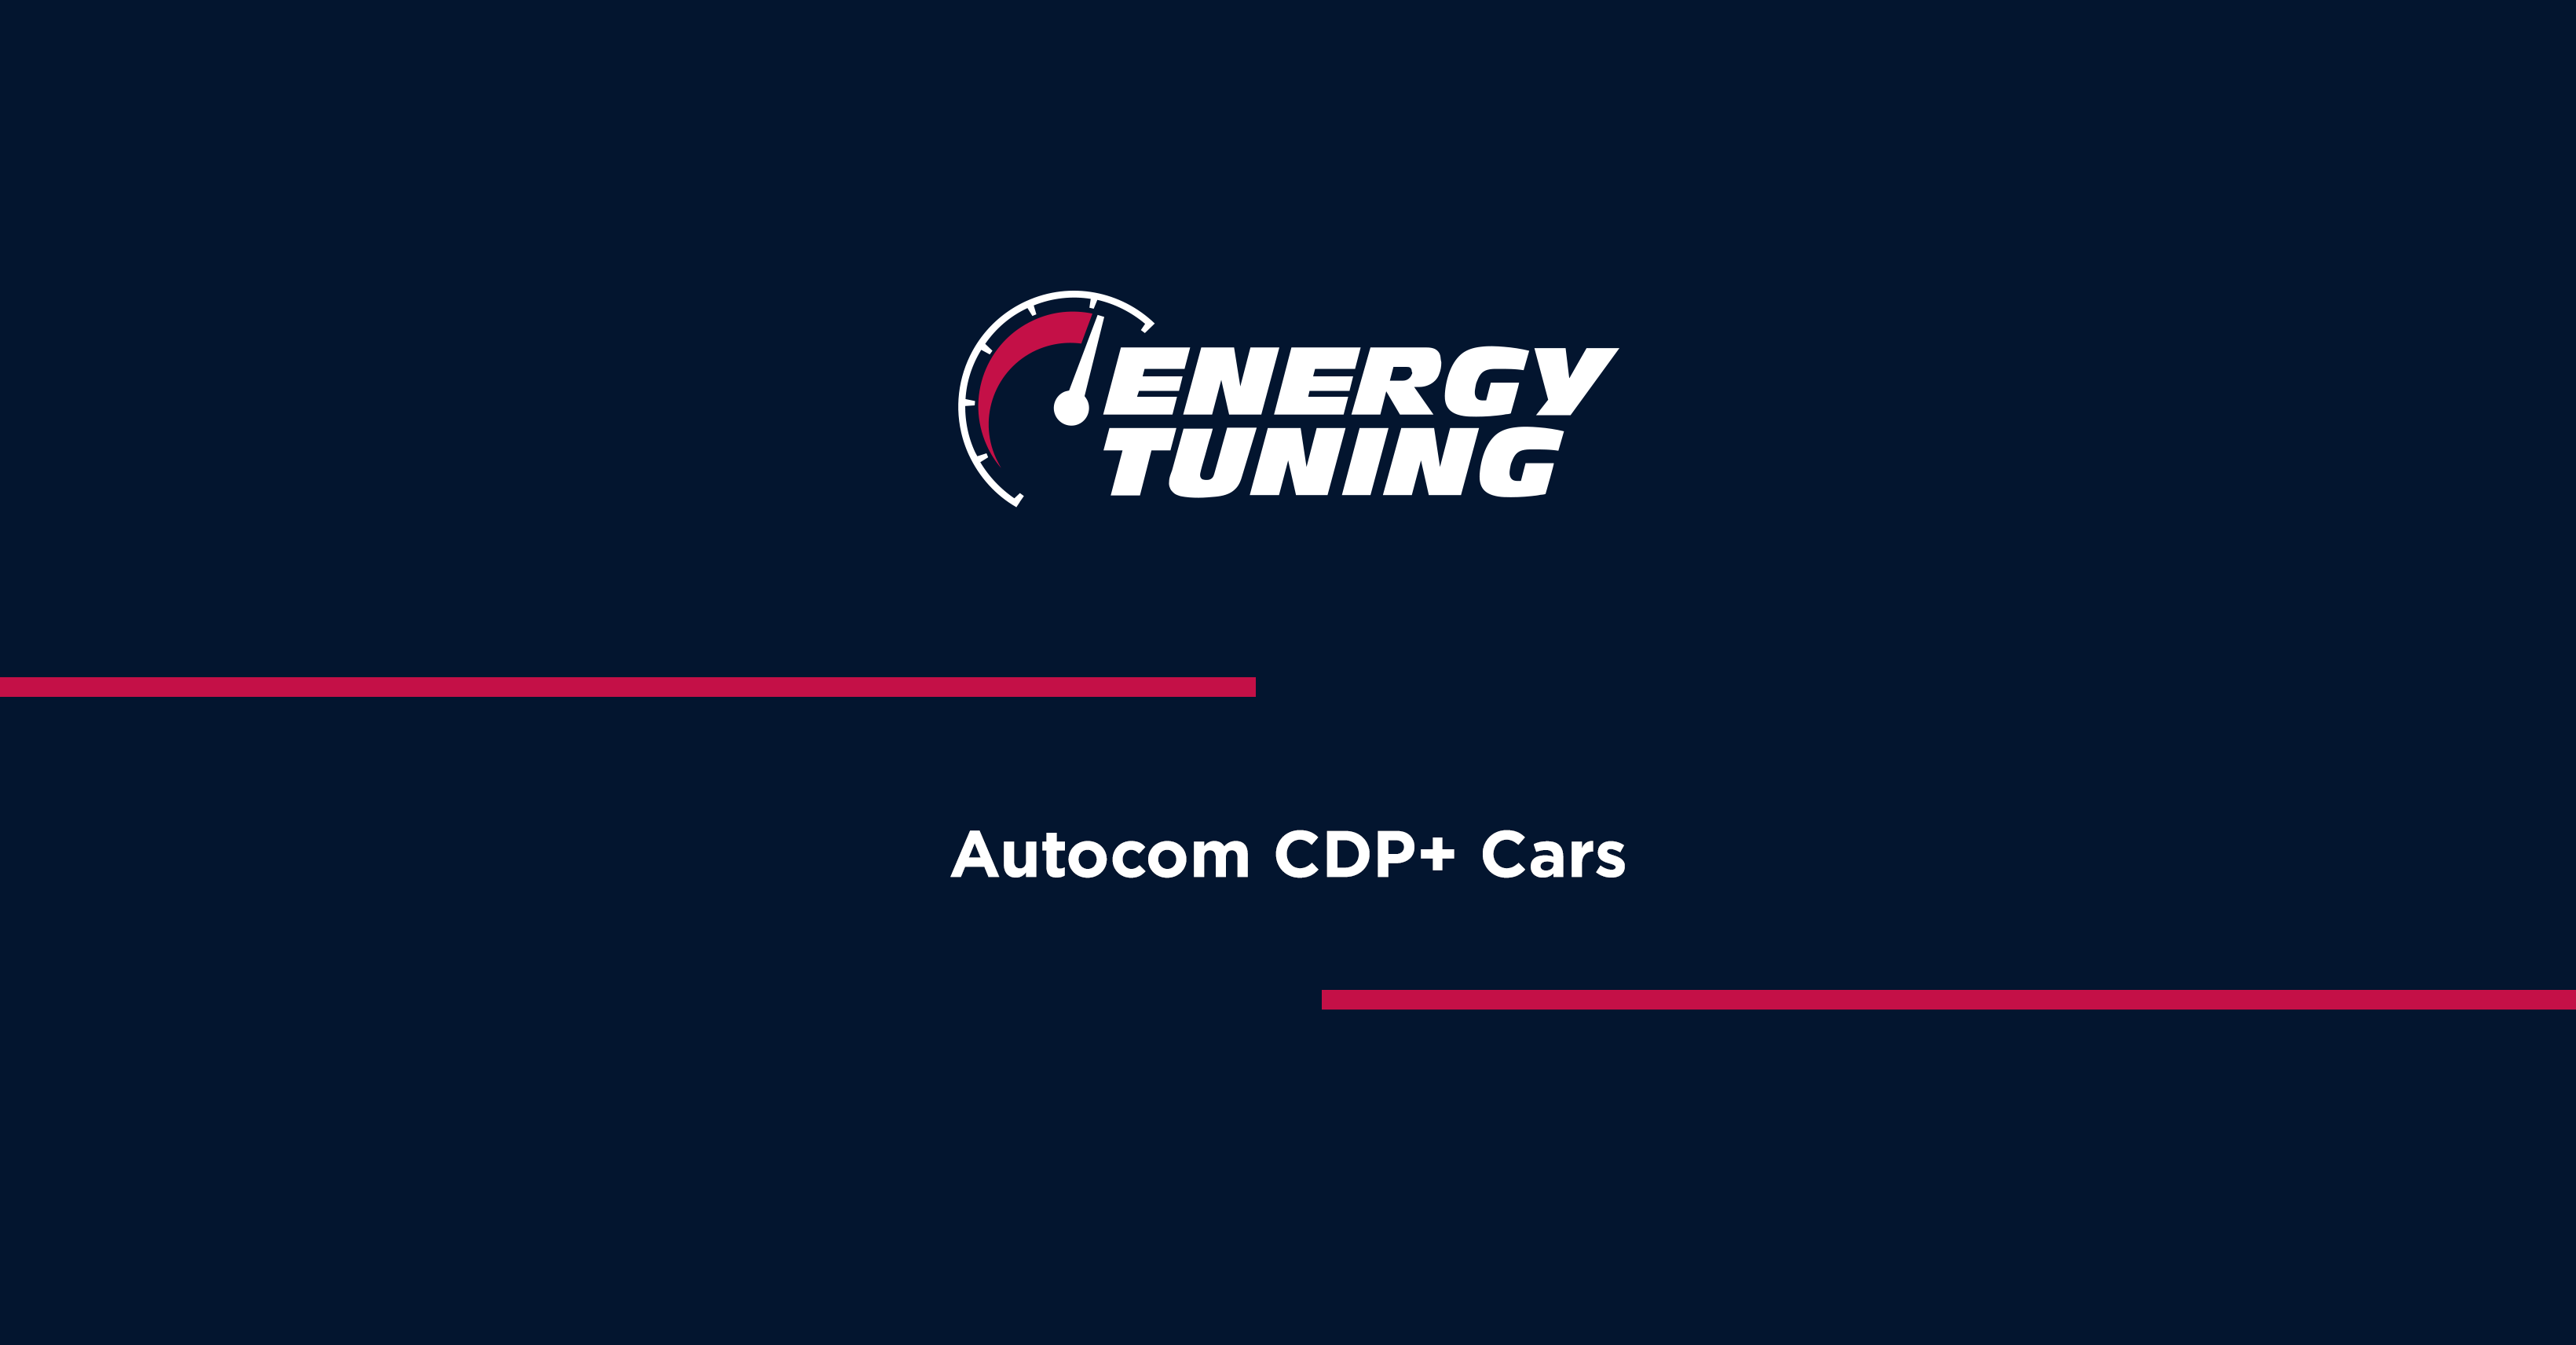 Autocom CDP+ Cars Order Online